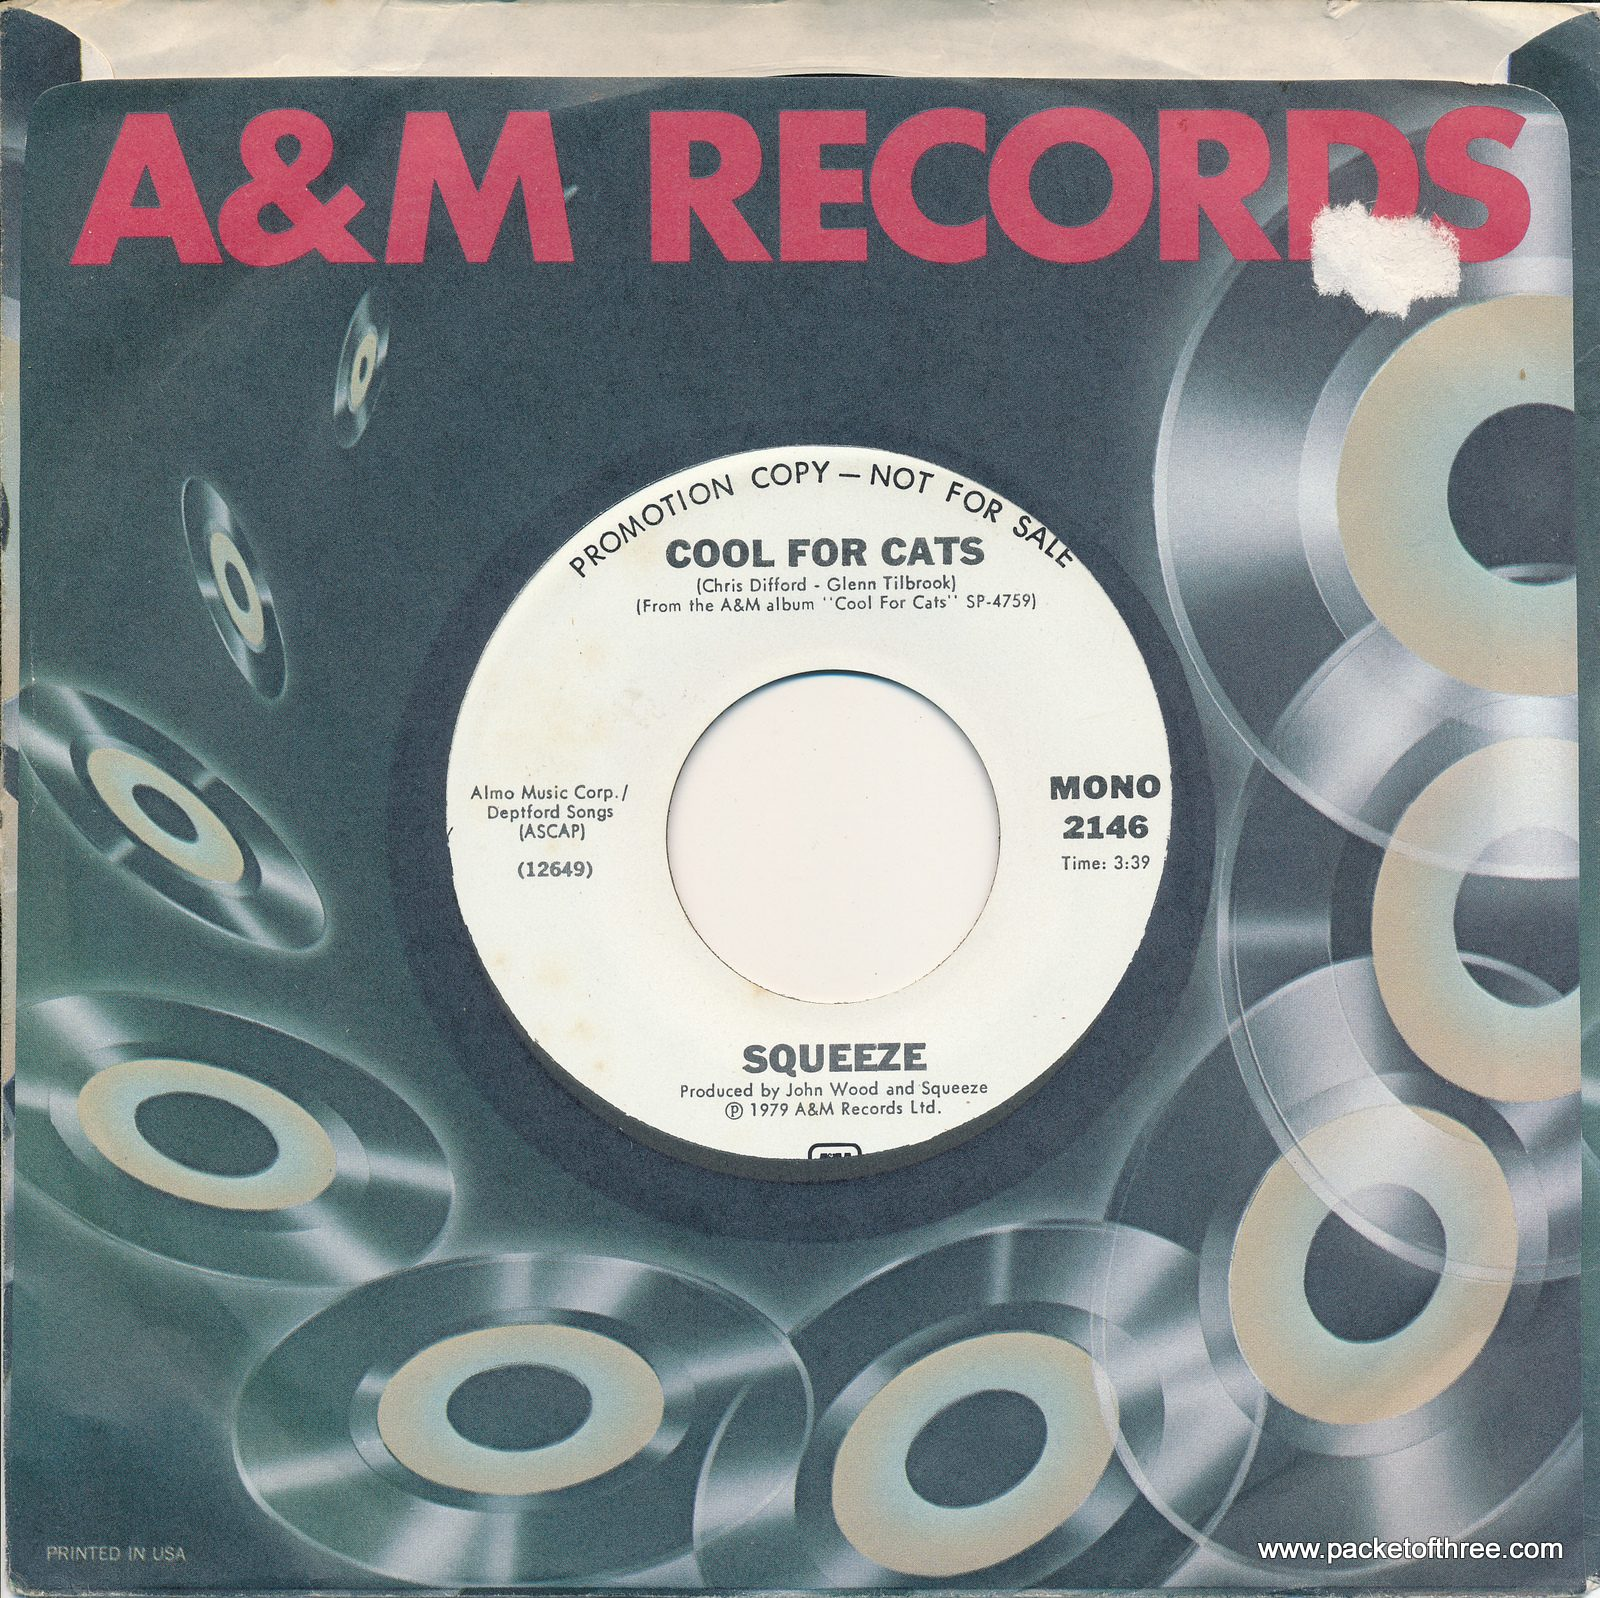 "Cool For Cats - USA - 7"" - mono/stereo promo"